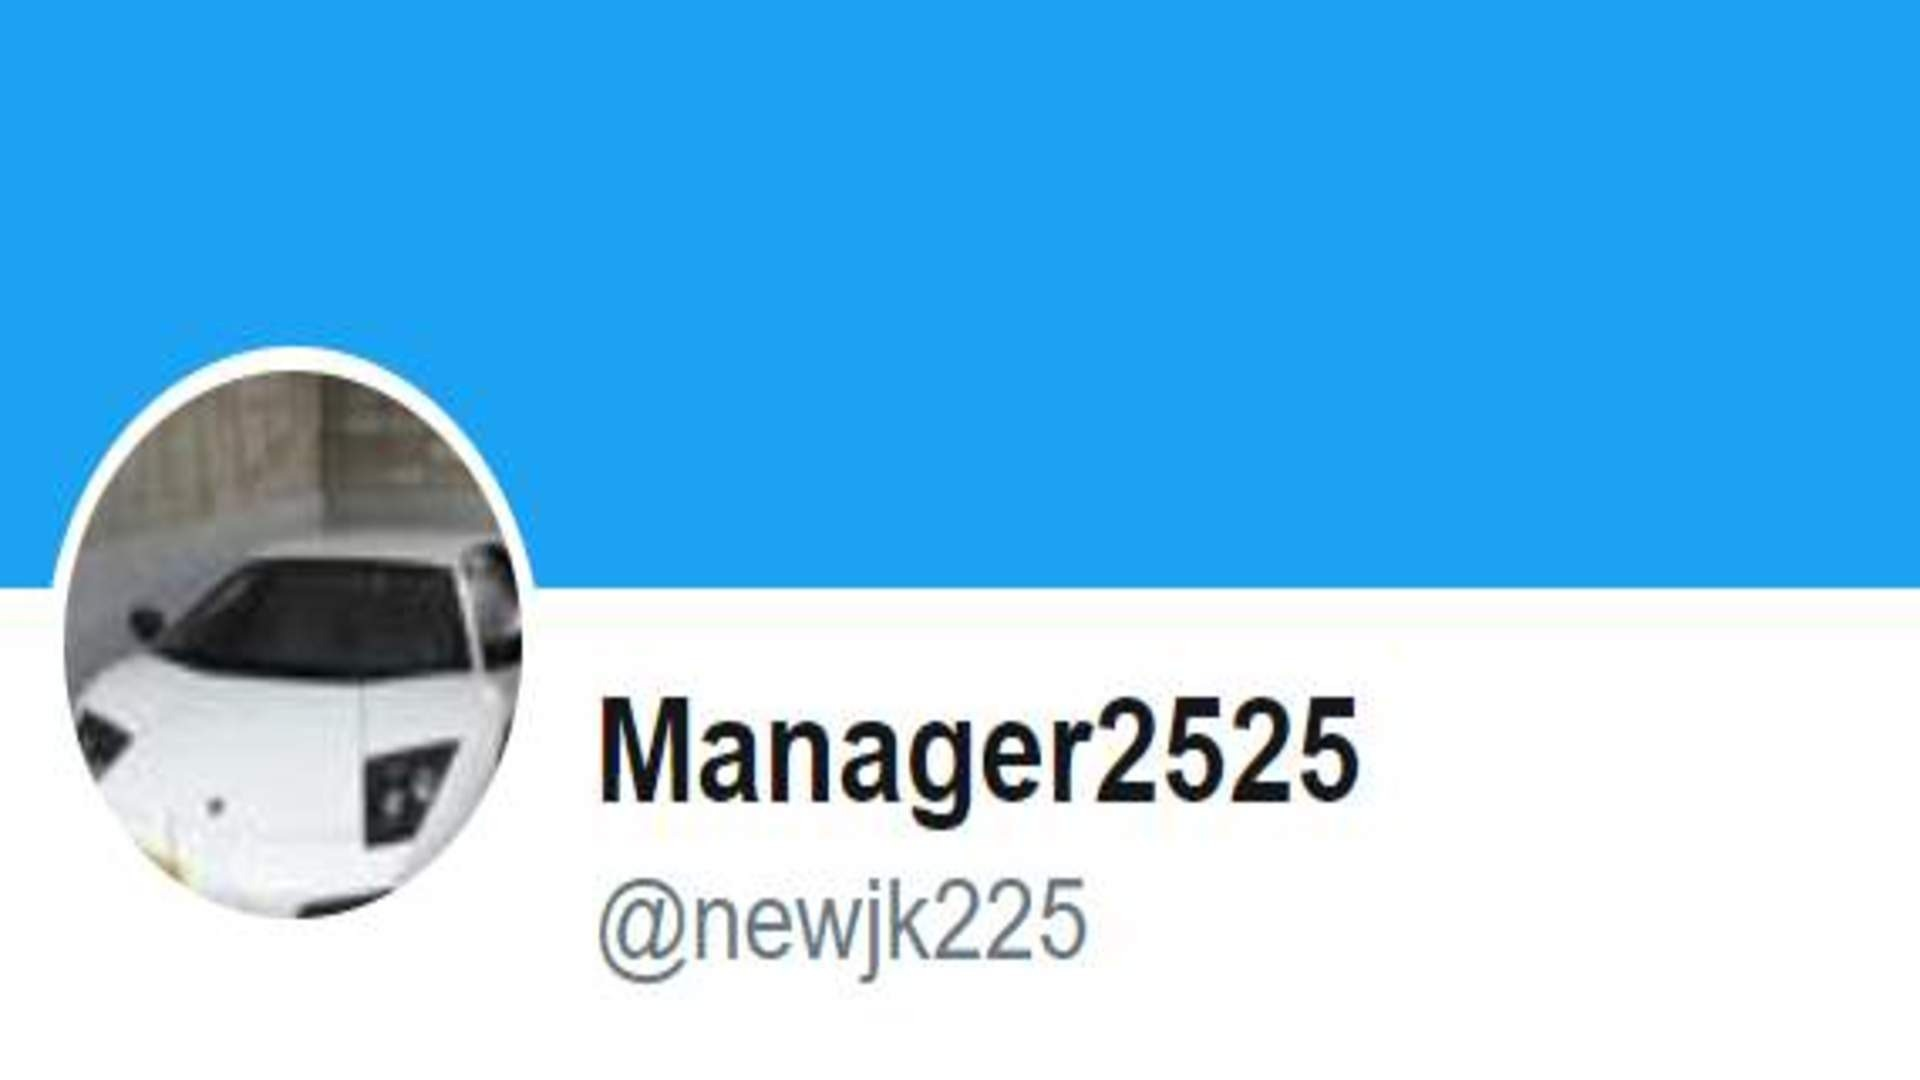 Manager2525